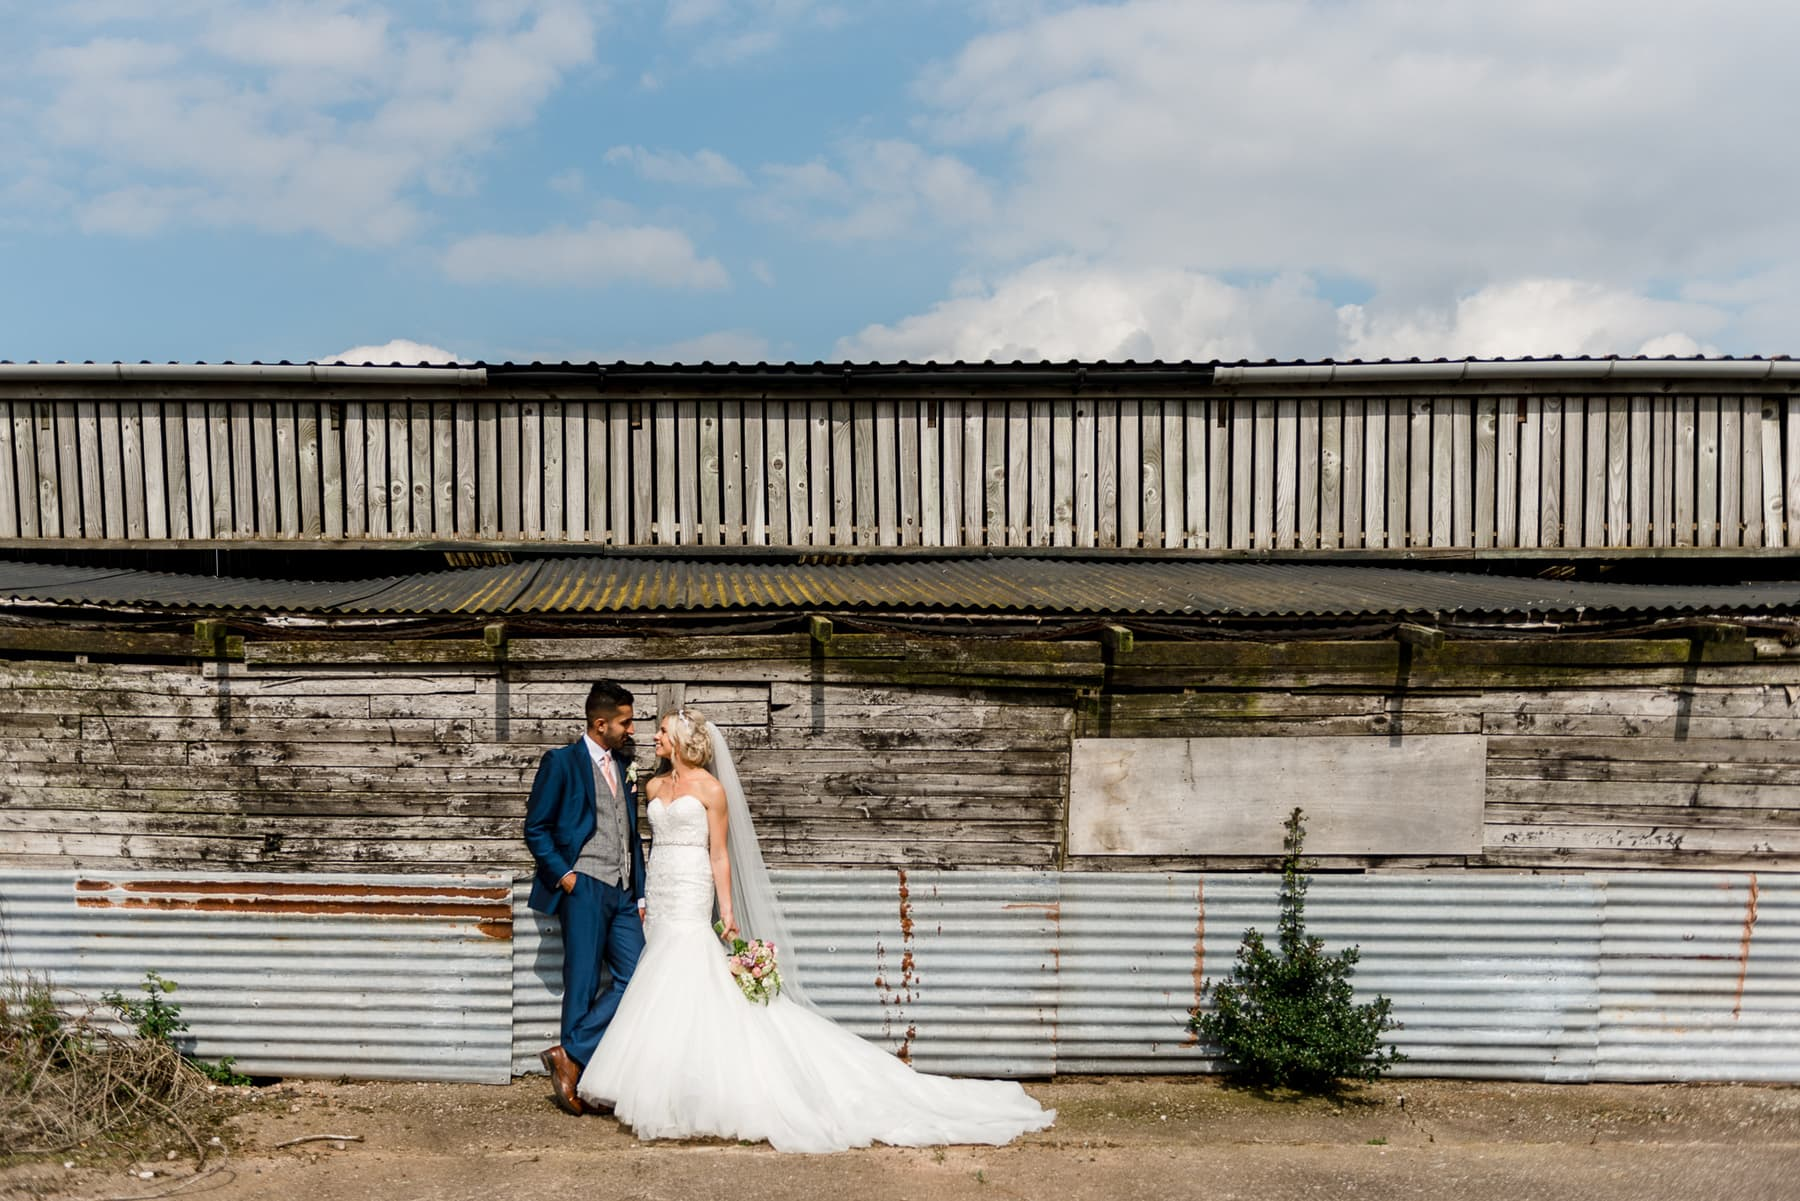 Kirsty and Yuvender's Beautiful Summer Wedding at Packington Moor